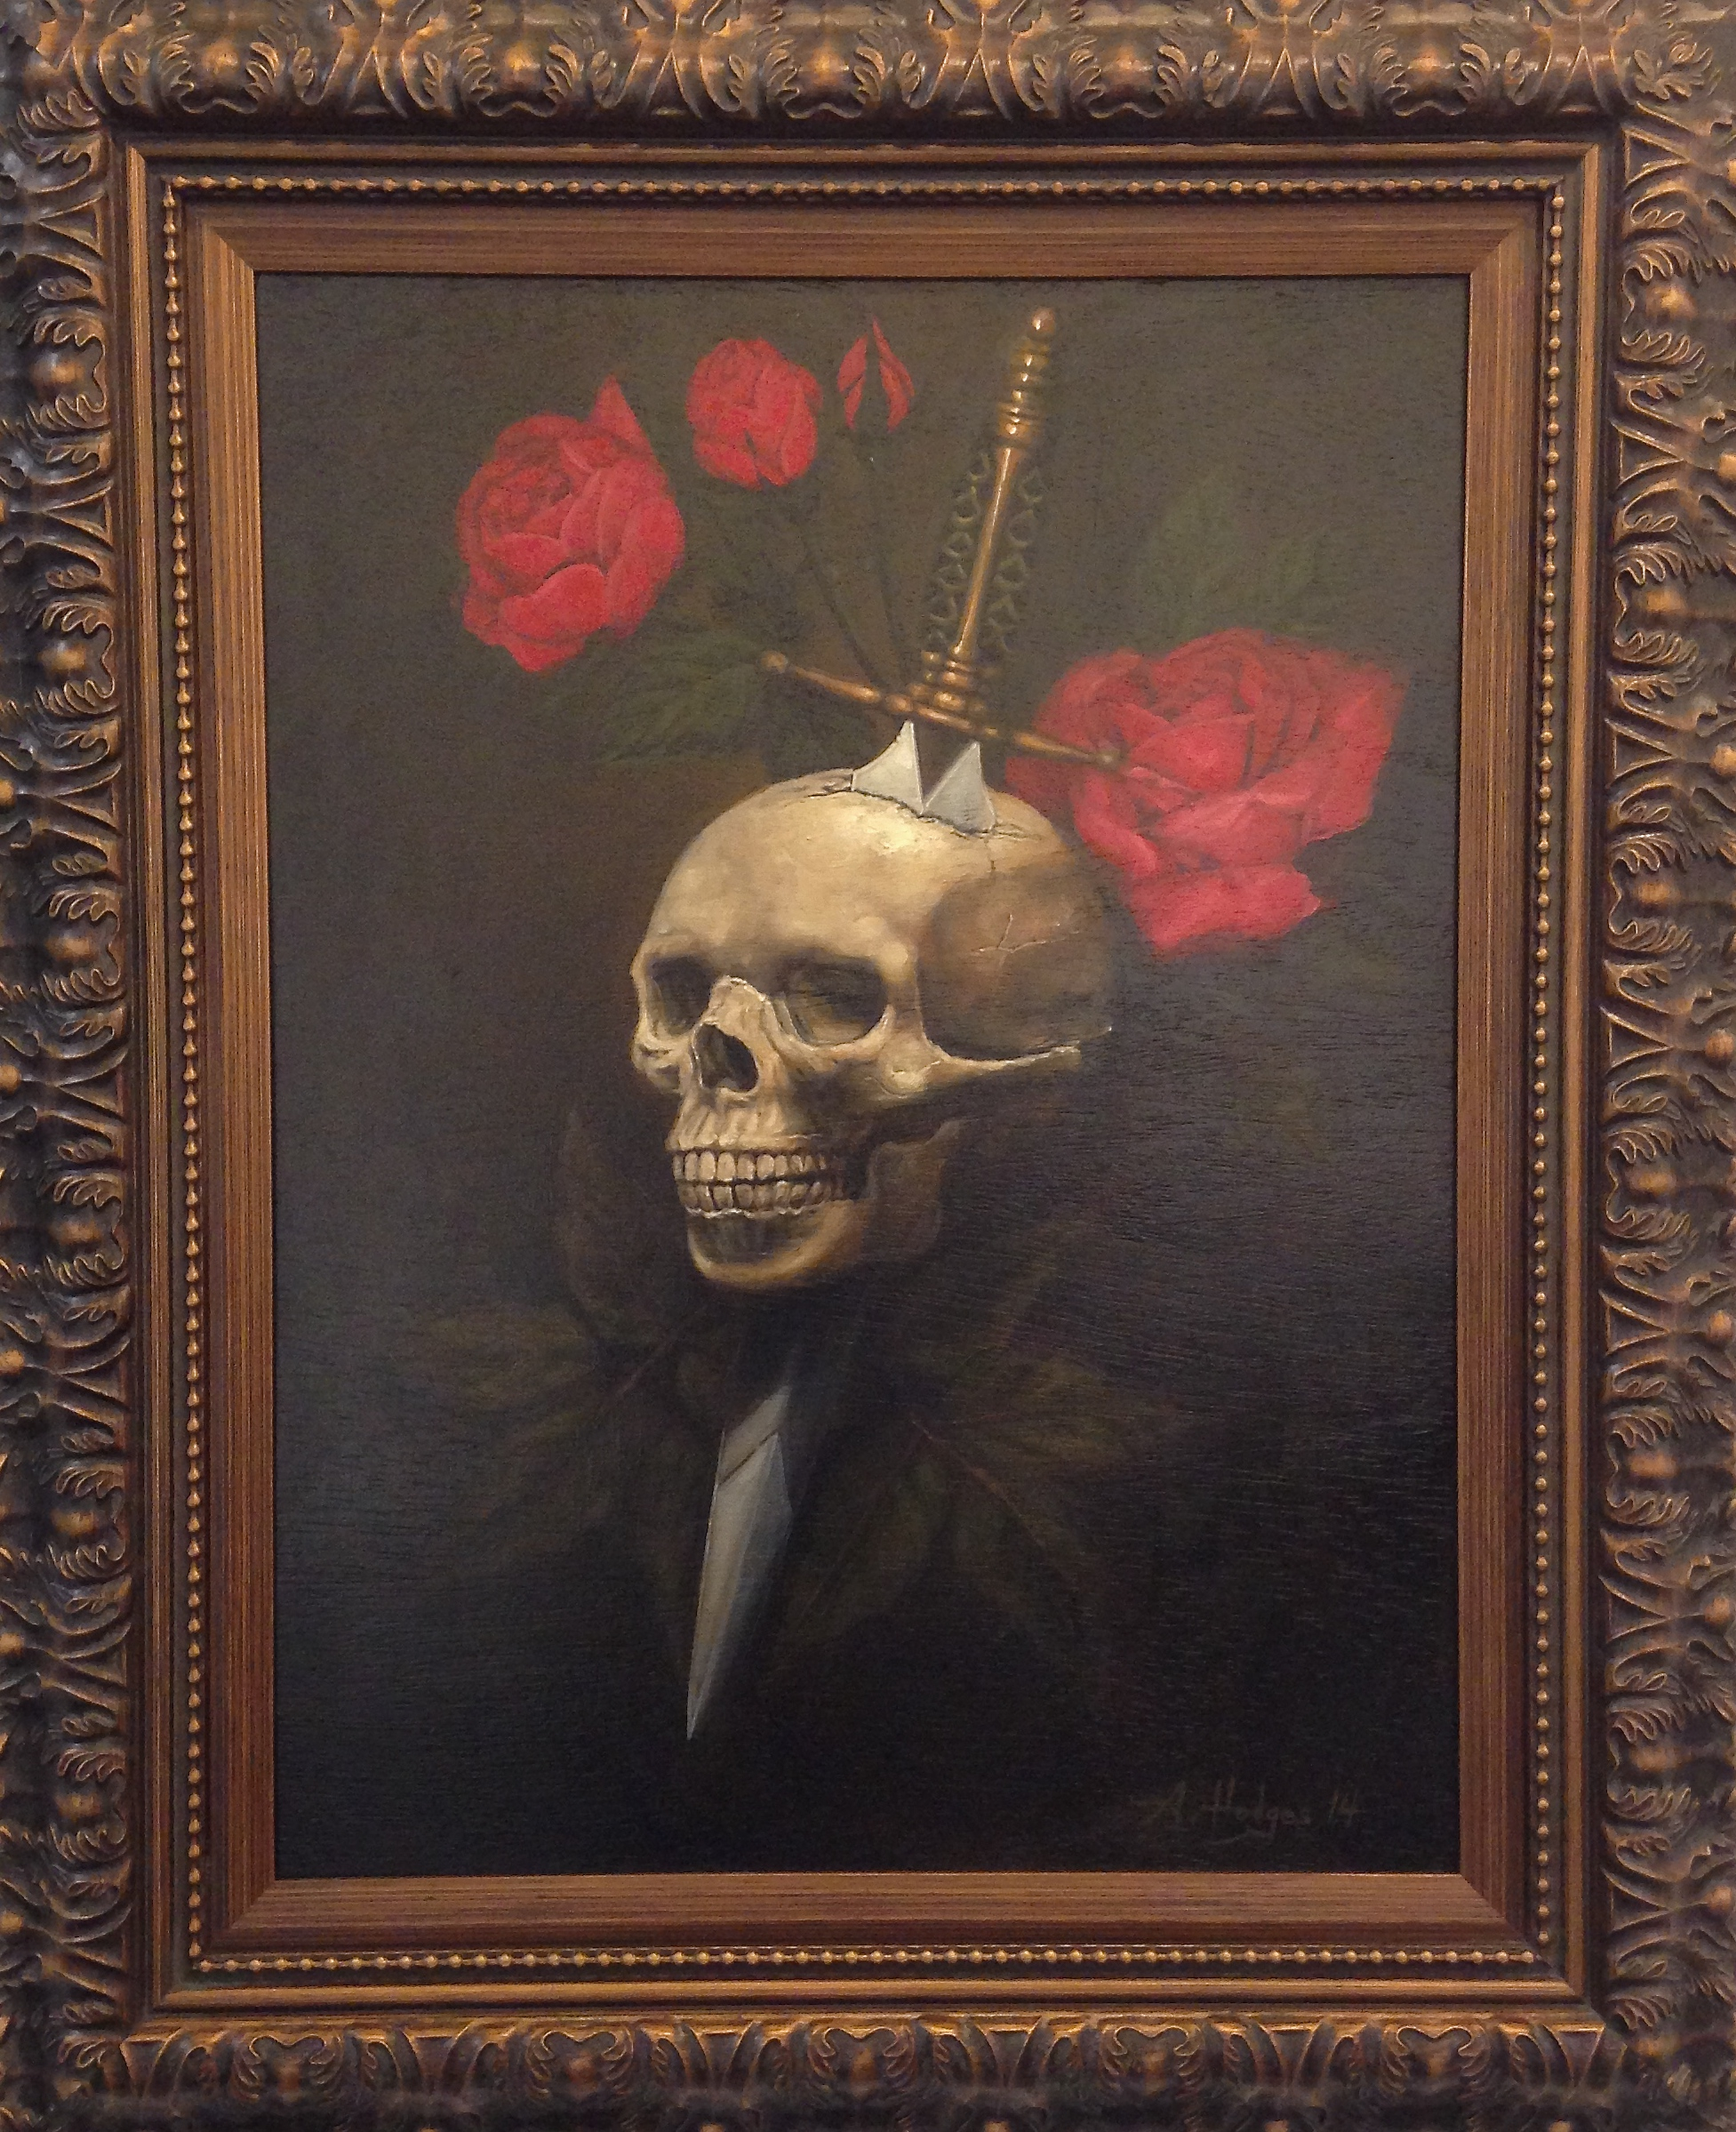 """""""Betrayal"""" by A. Hodges Oil on Canvas 24 in. x 18 in. framed SOLD"""